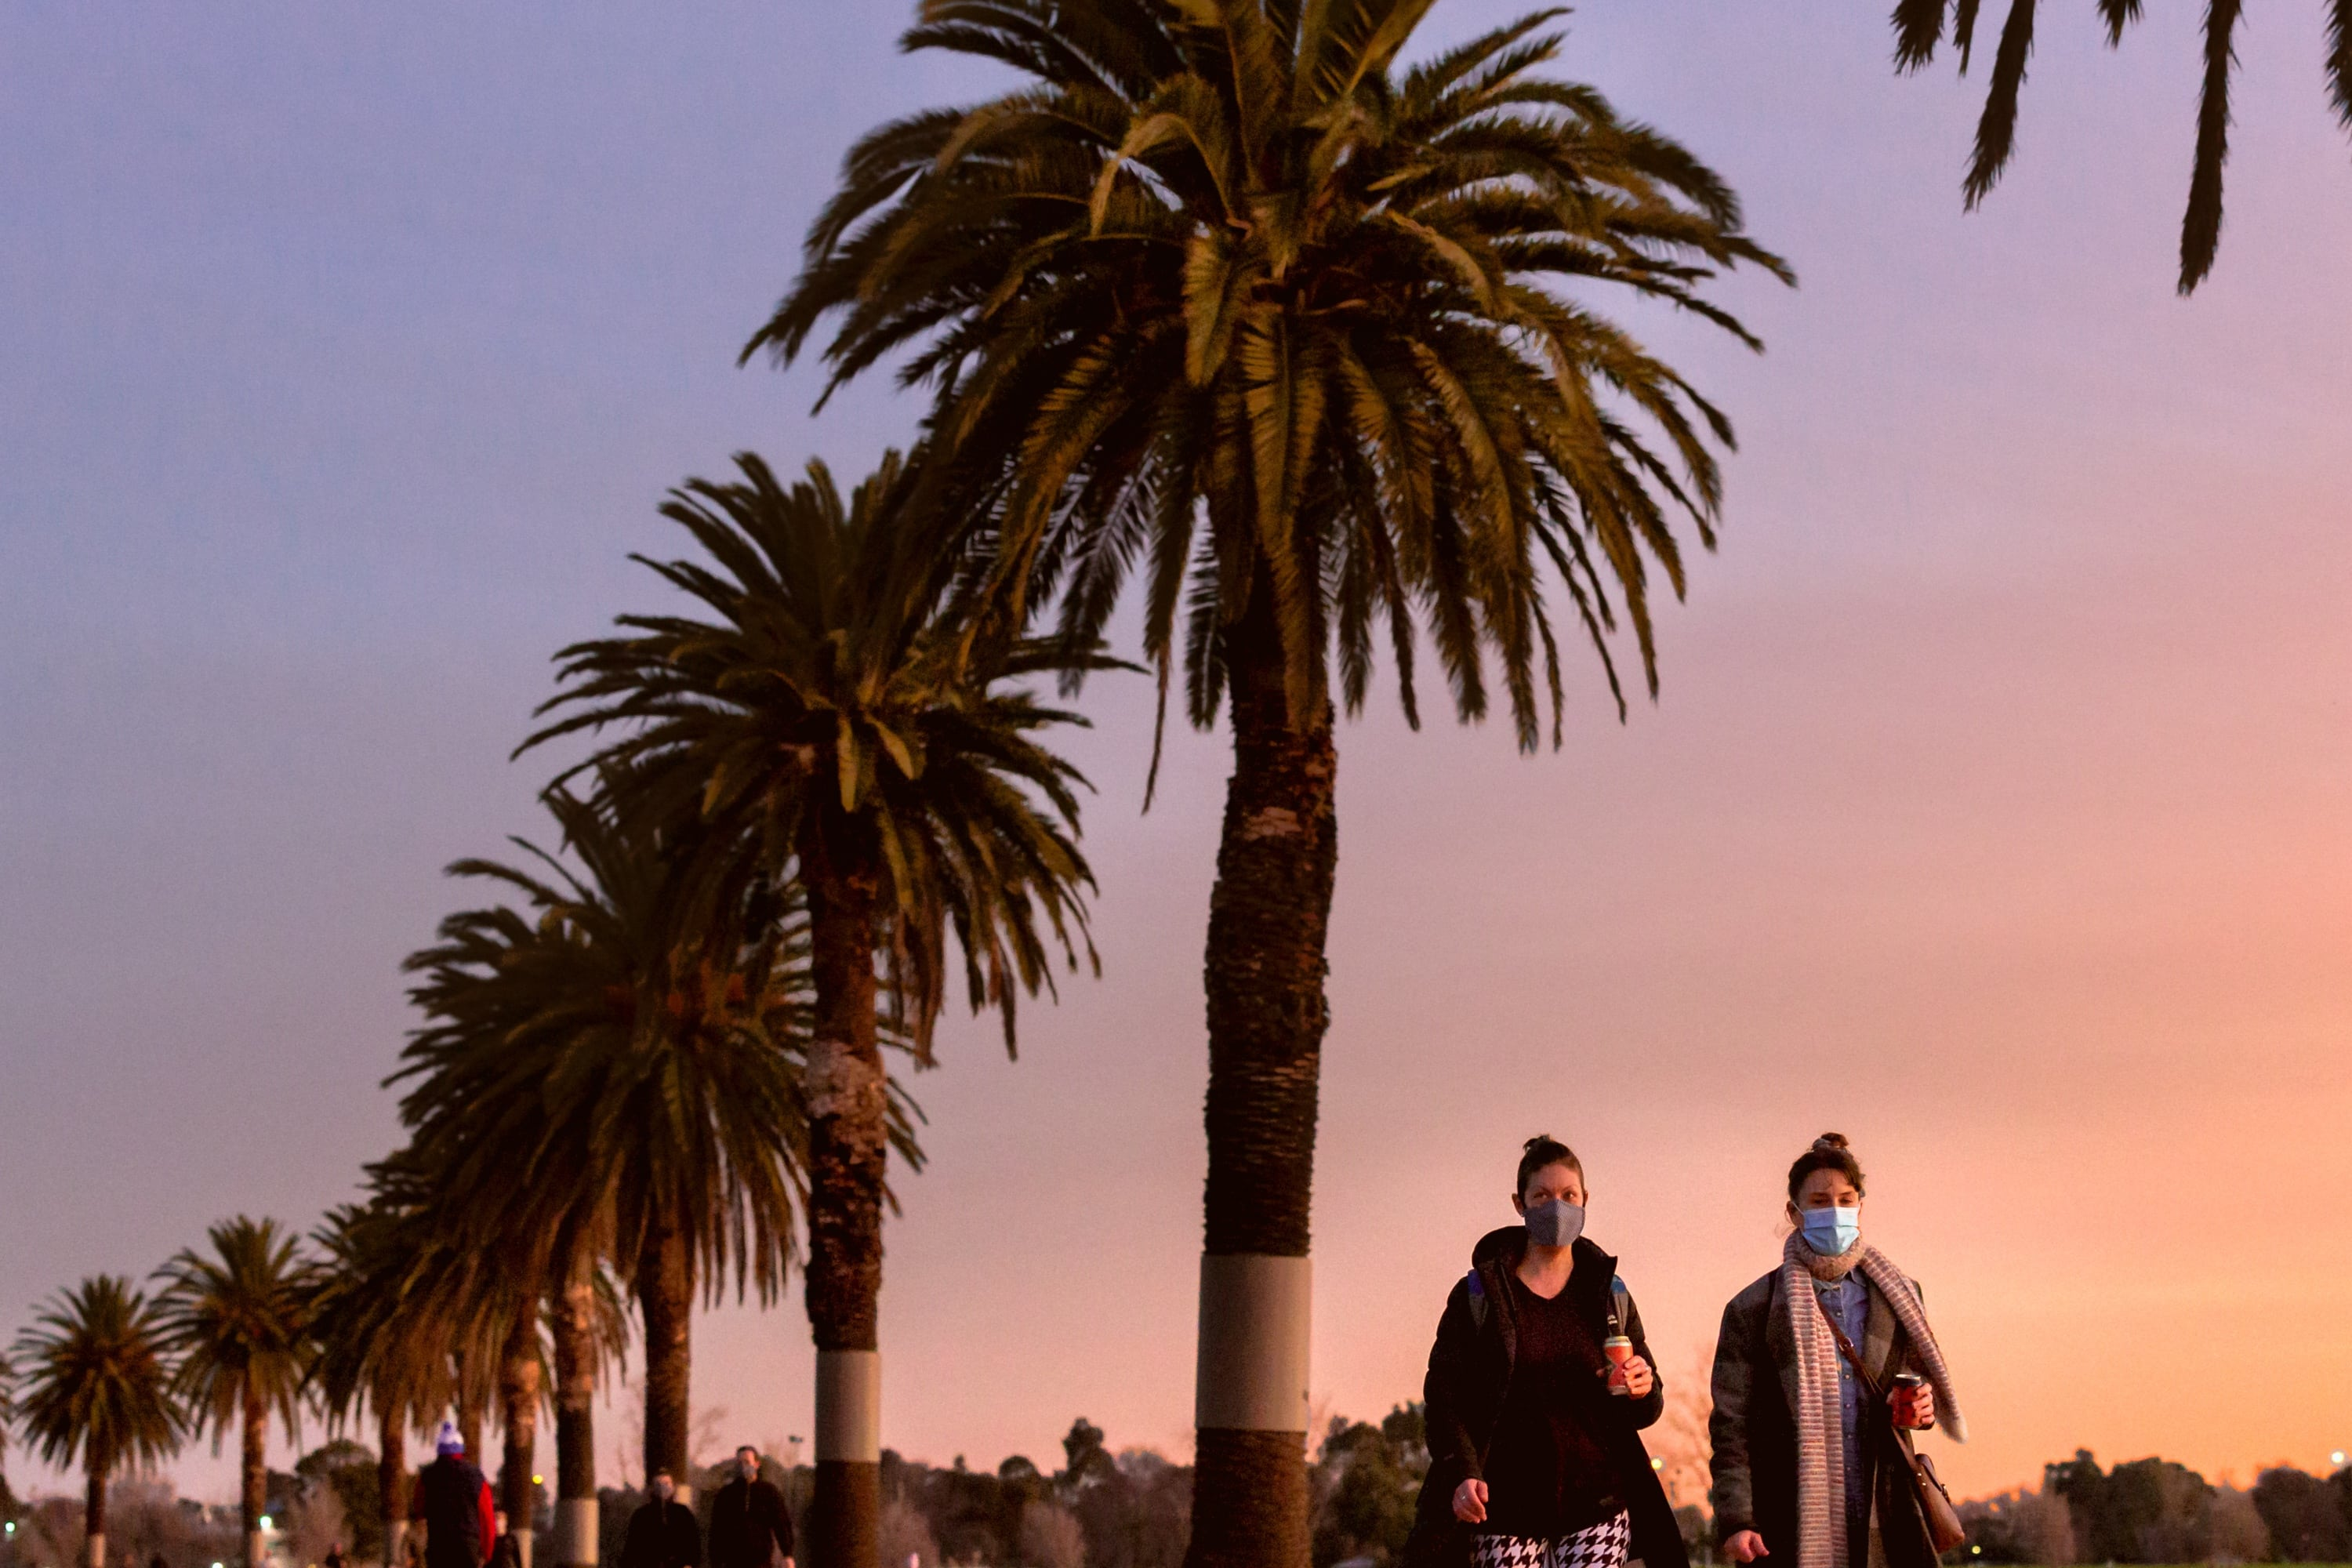 MELBOURNE, AUSTRALIA - JULY 24: People seen wearing masks in Albert Park Lake during COVID 19 on 24 July, 2020 in Melbourne, Australia. the Victorian Premier confirmed 300 new coronavirus cases overnight. As of 11.59pm on Wednesday 22 July, people living in metropolitan Melbourne and Mitchell Shire and will now be required to wear a face covering when leaving home, following a concerning increase in coronavirus cases in recent days. The fine for not wearing a face covering will be 0. (Photo by Speed Media/Icon Sportswire)